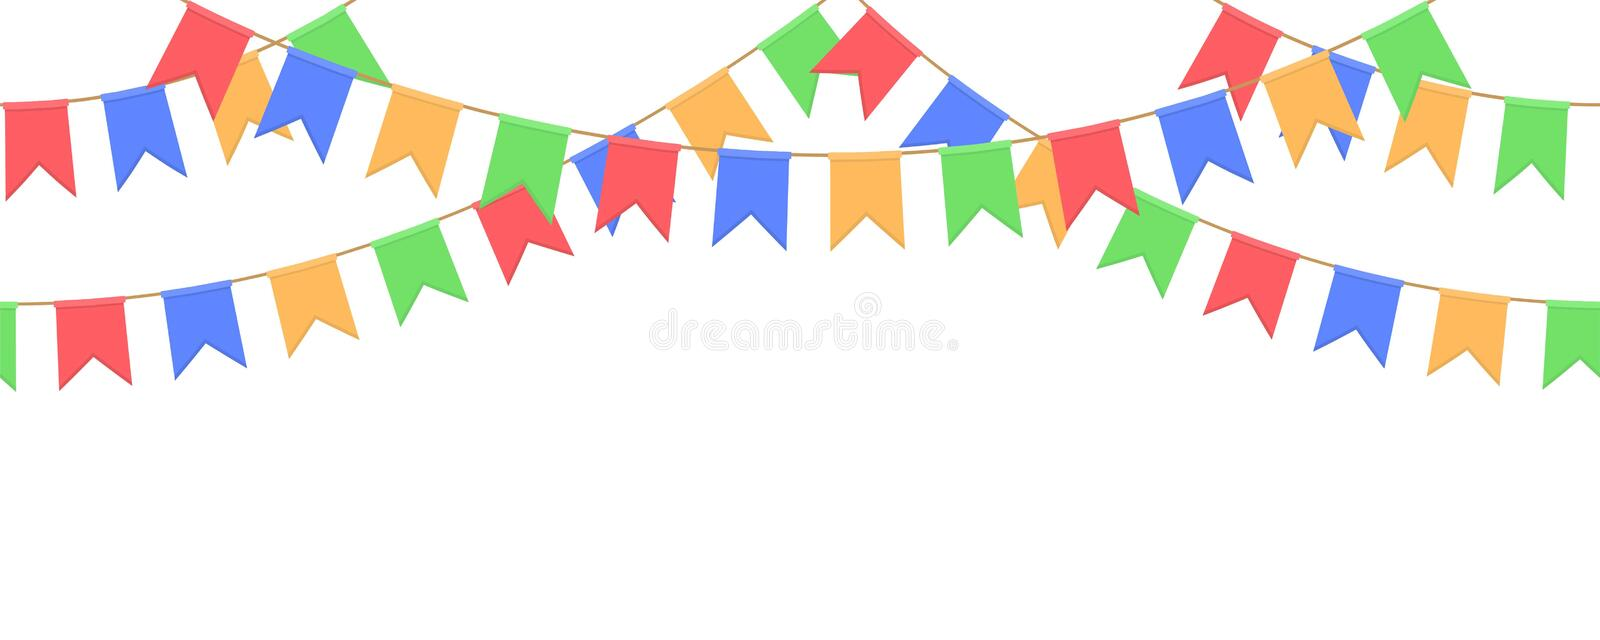 Seamless garland with celebration flags chain, yellow, blue, red, green pennons on white background, footer and banner for decorat. Seamless garland with royalty free illustration